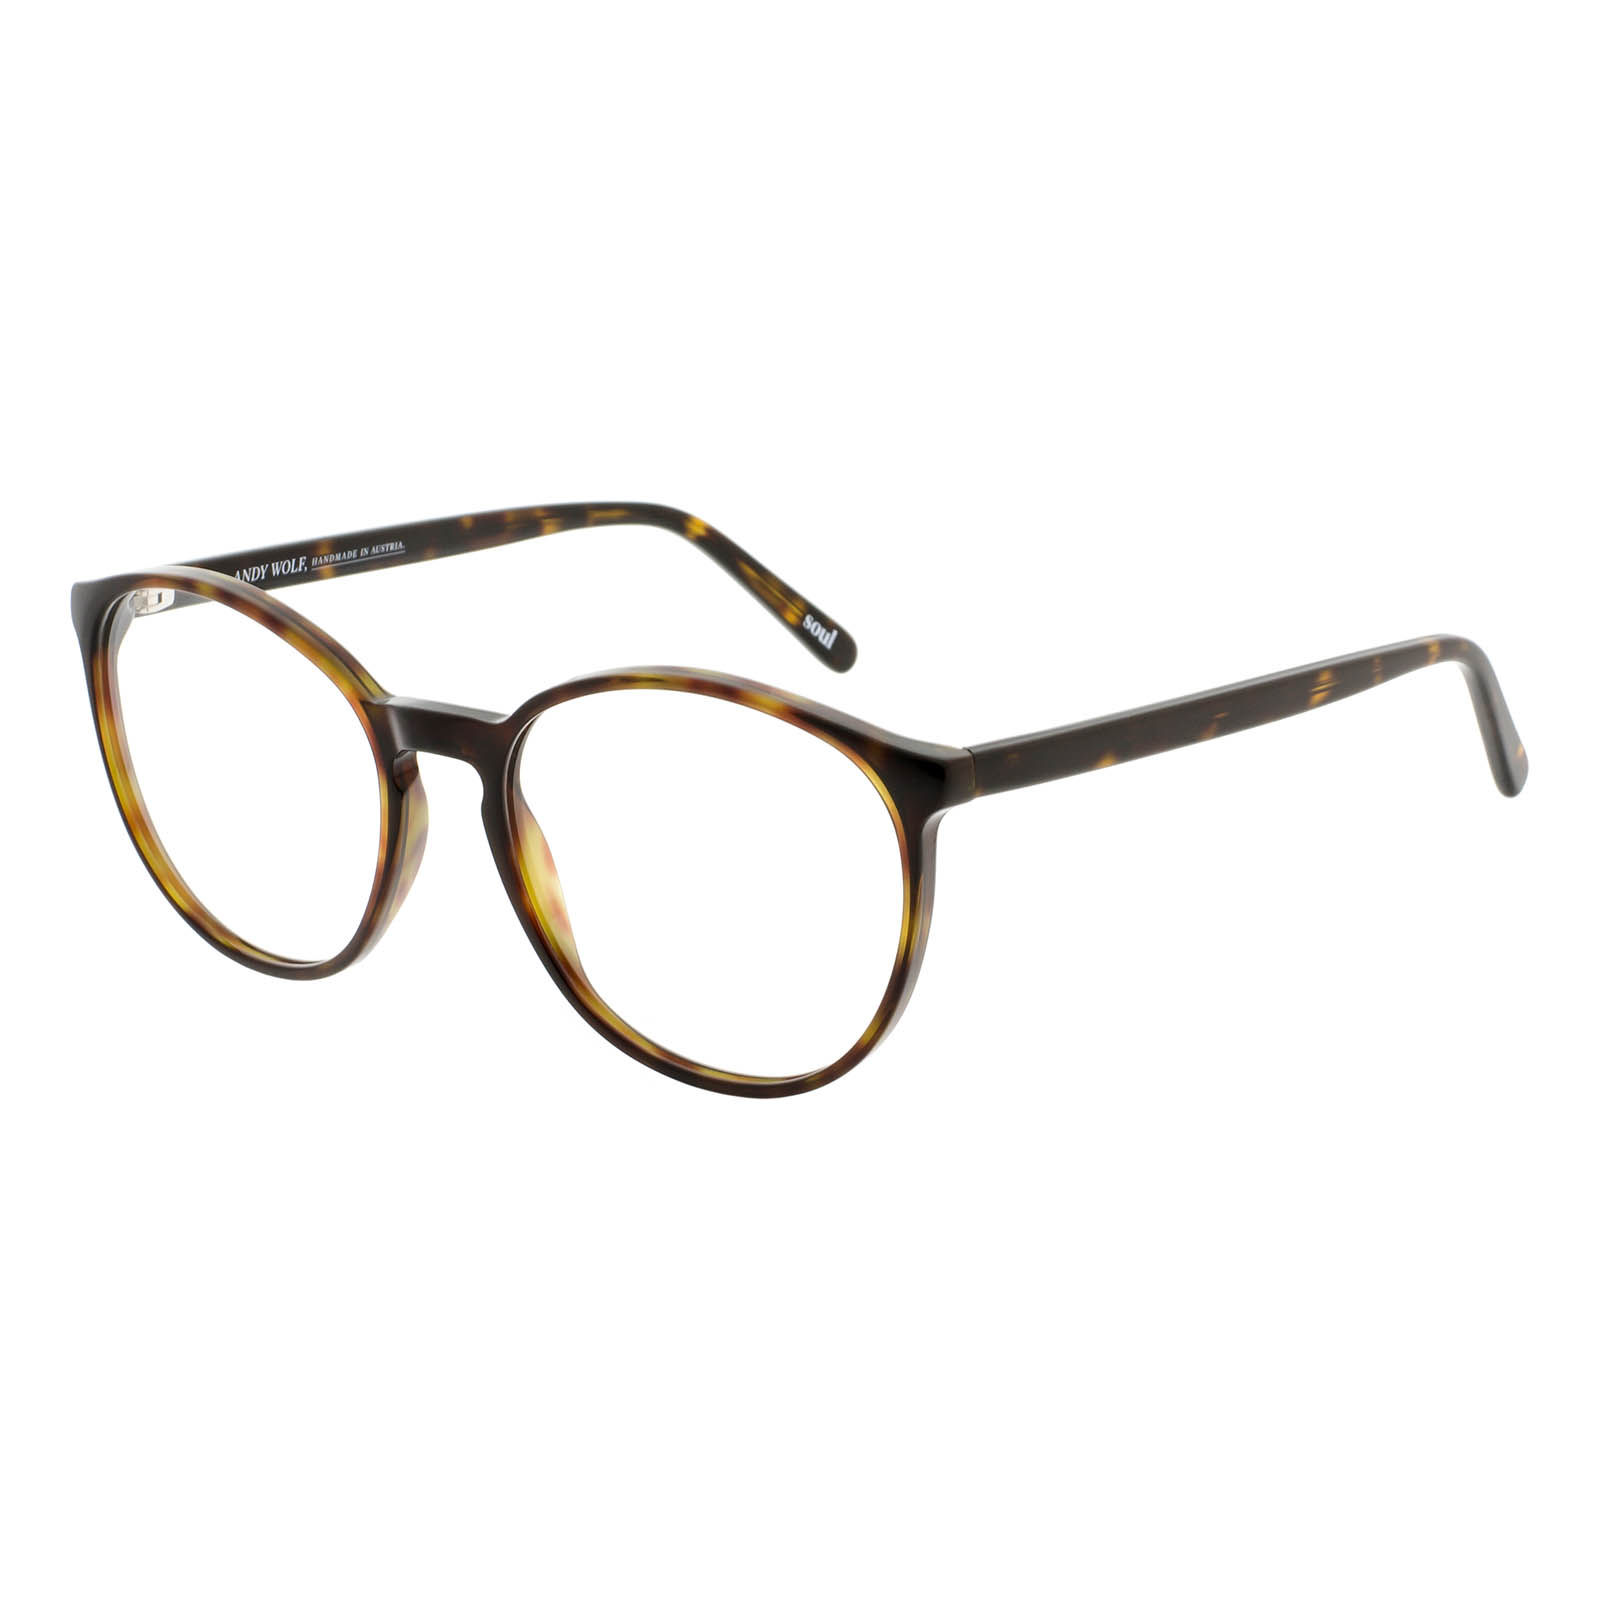 ANDY WOLF EYEWEAR_5067_B_side